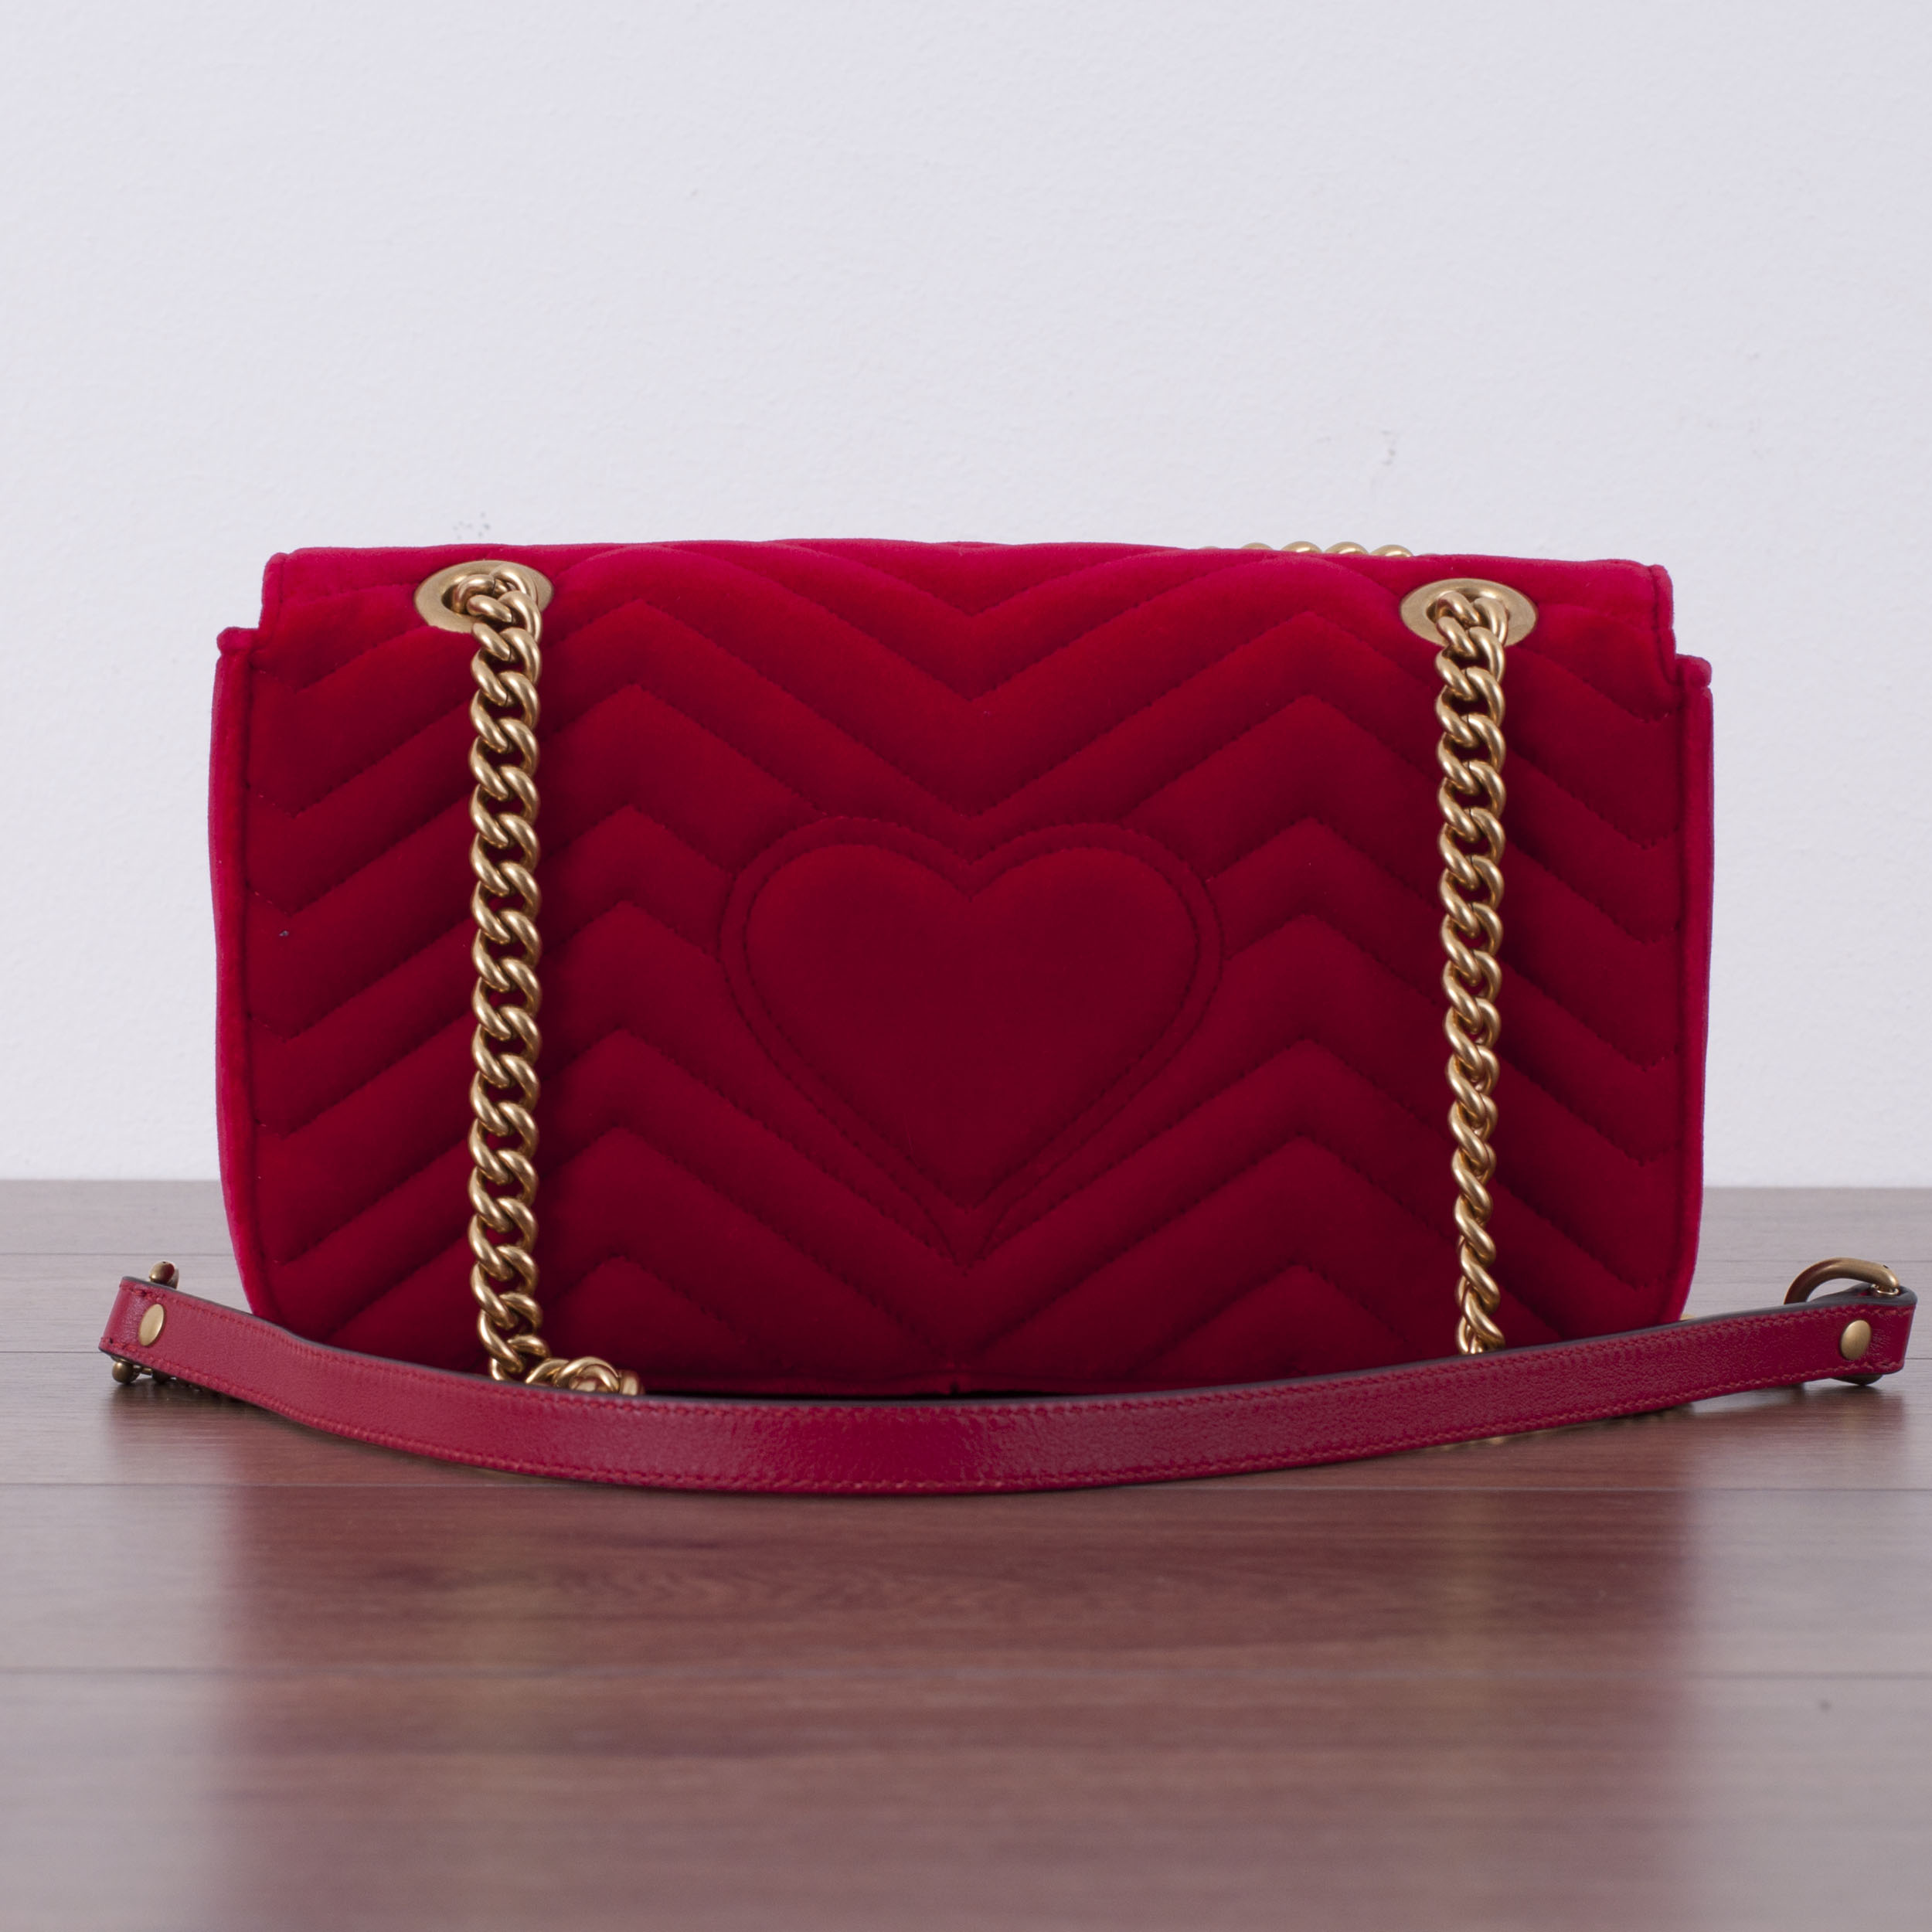 29016458b829 GUCCI 1790$ Authentic New Small Red Velvet GG Marmont Shoulder Bag | eBay